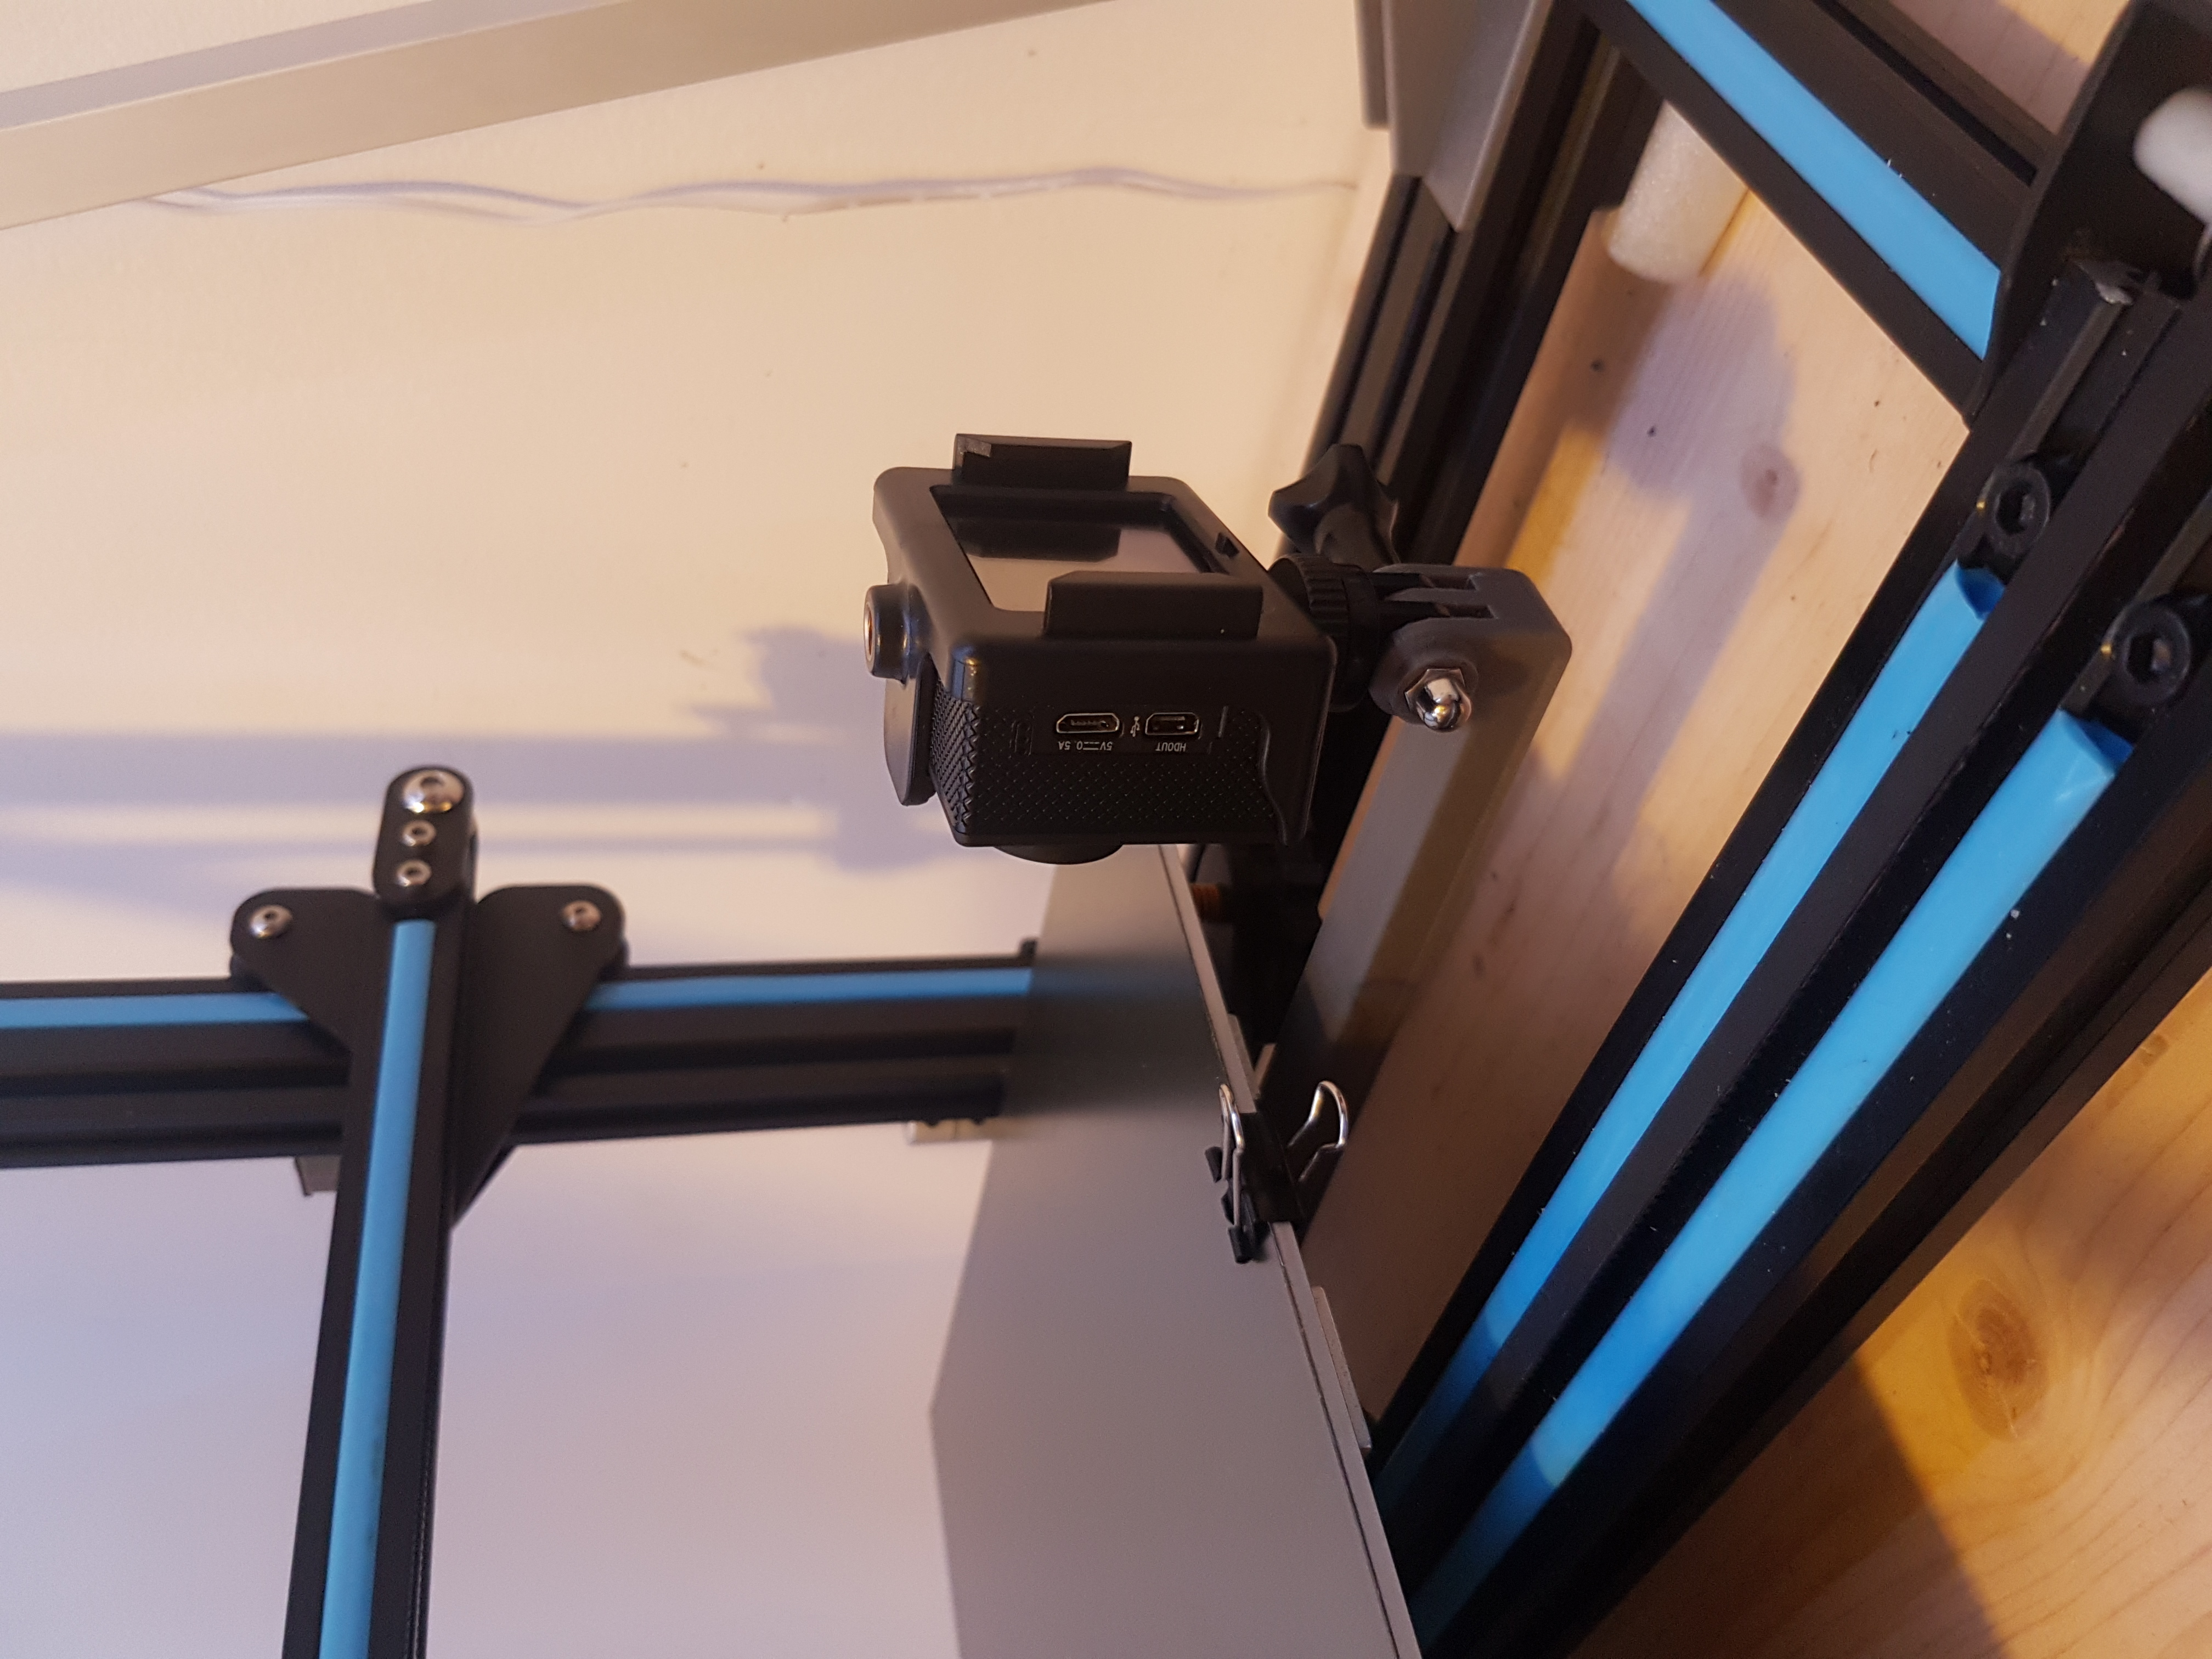 20190613_171514.jpg Download free STL file cr10 and i3 mega bed frame action cam mount - still bed timelapse • 3D print object, samster_3d